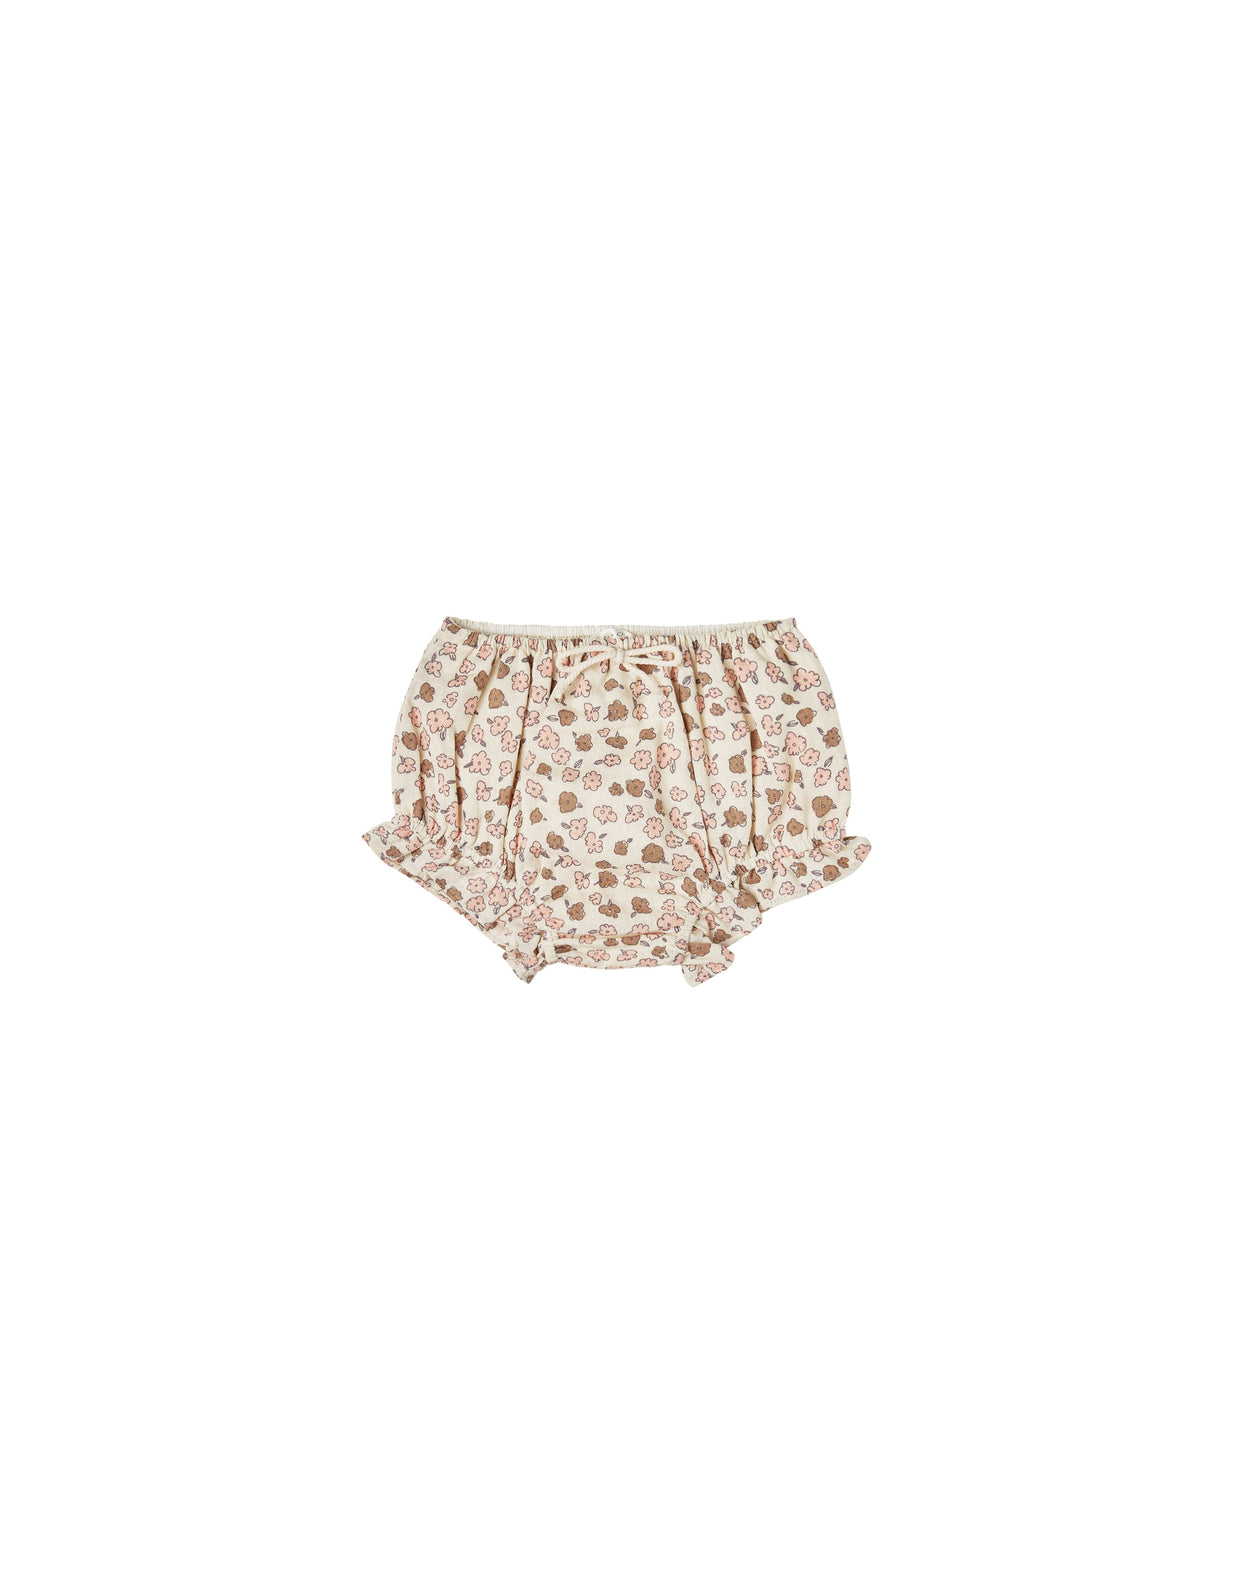 The Rylee & Cru Delicate Flower Flutter Bloomer Natural